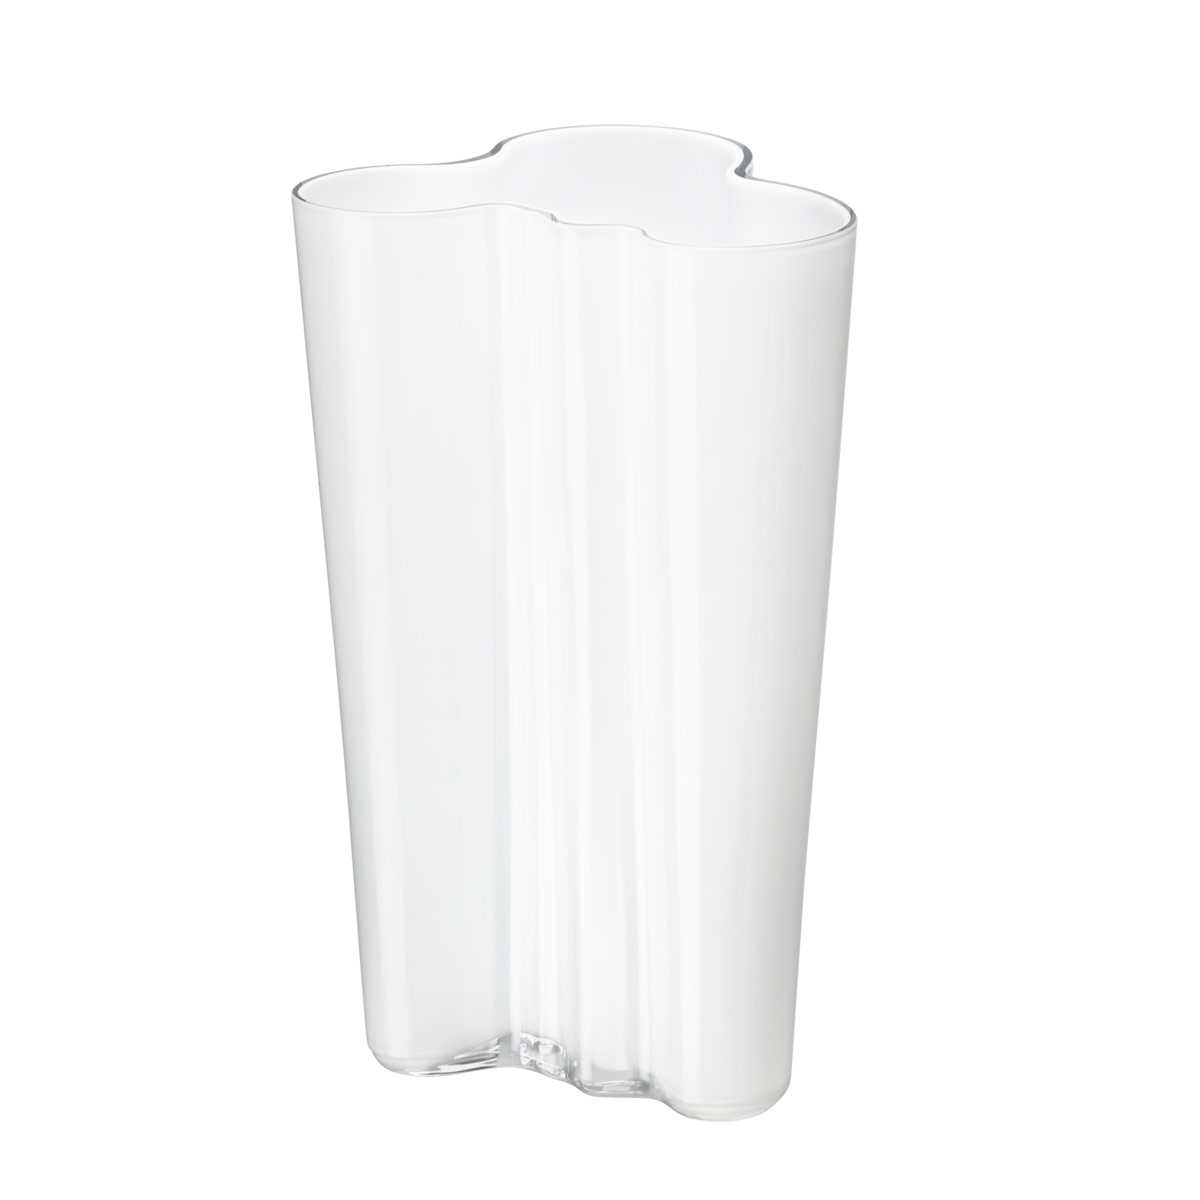 aalto finlandia white vase 8 iittala alvar aalto vases. Black Bedroom Furniture Sets. Home Design Ideas